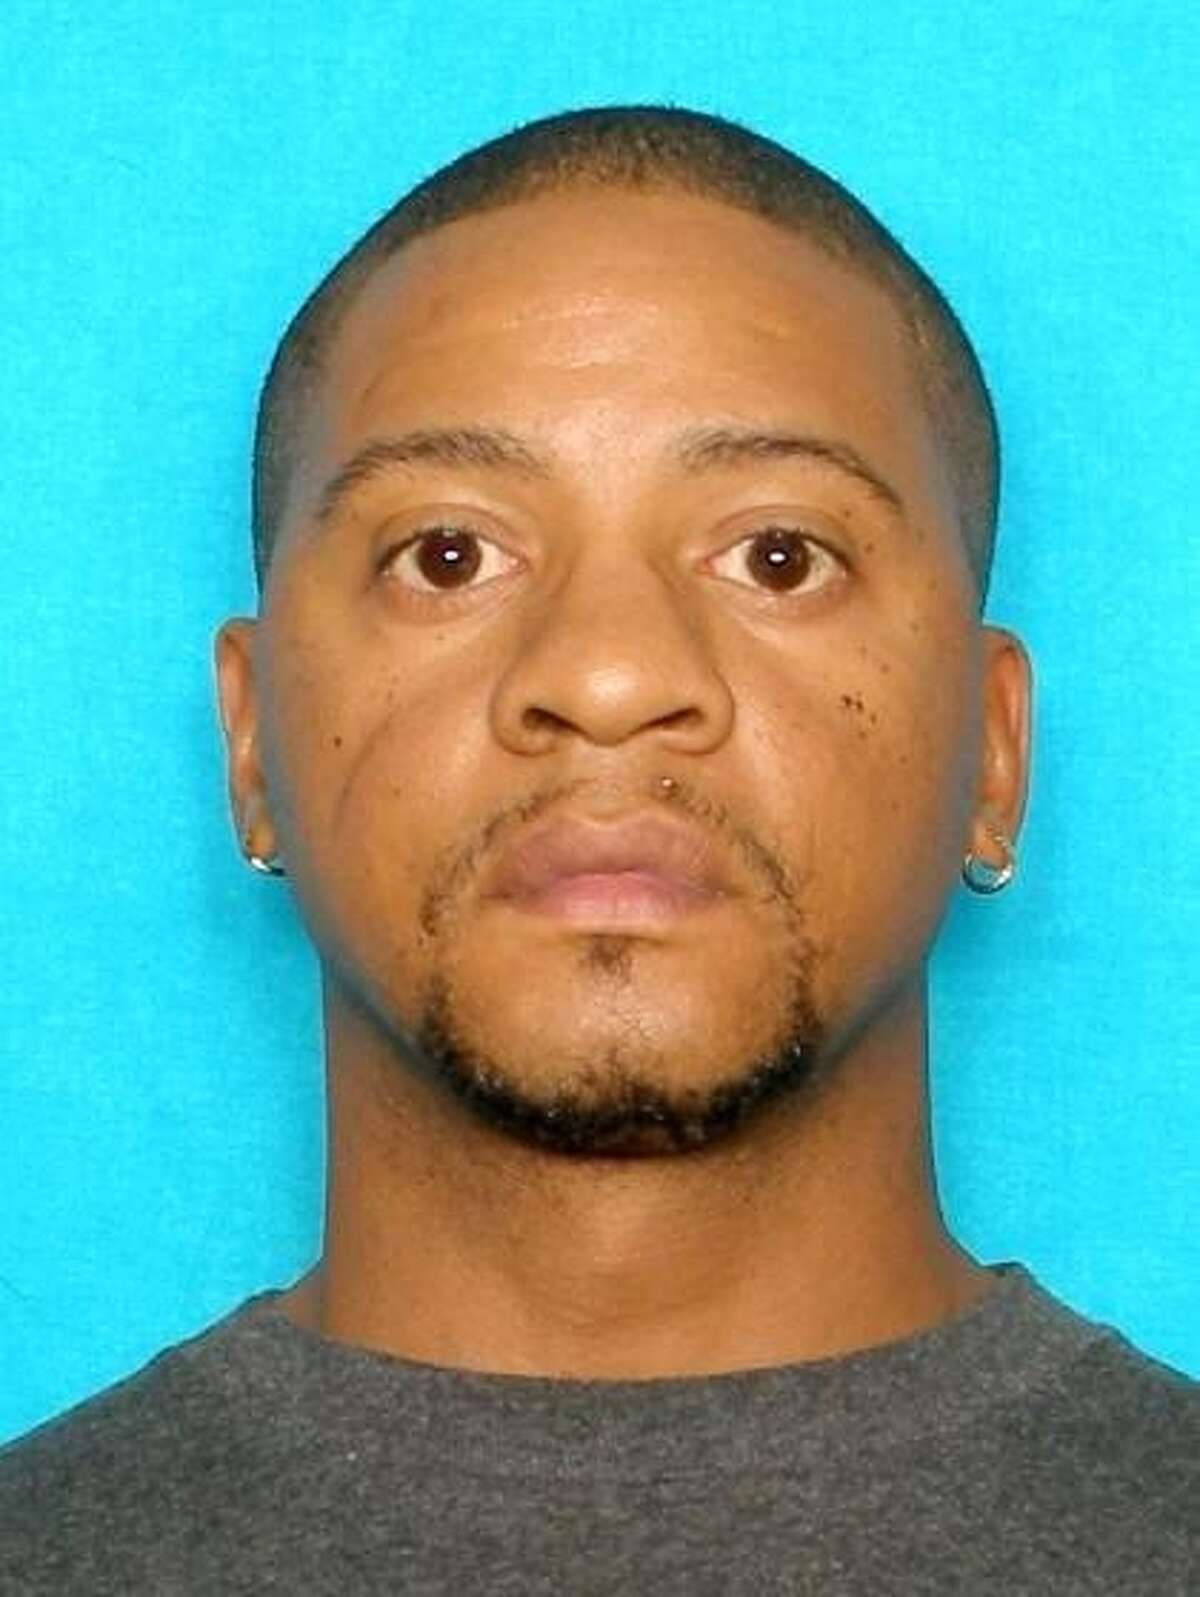 Christopher Bernard Doss, 41, is wanted on capital murder charges after gunning two people down Sunday on the West Side, according to police.